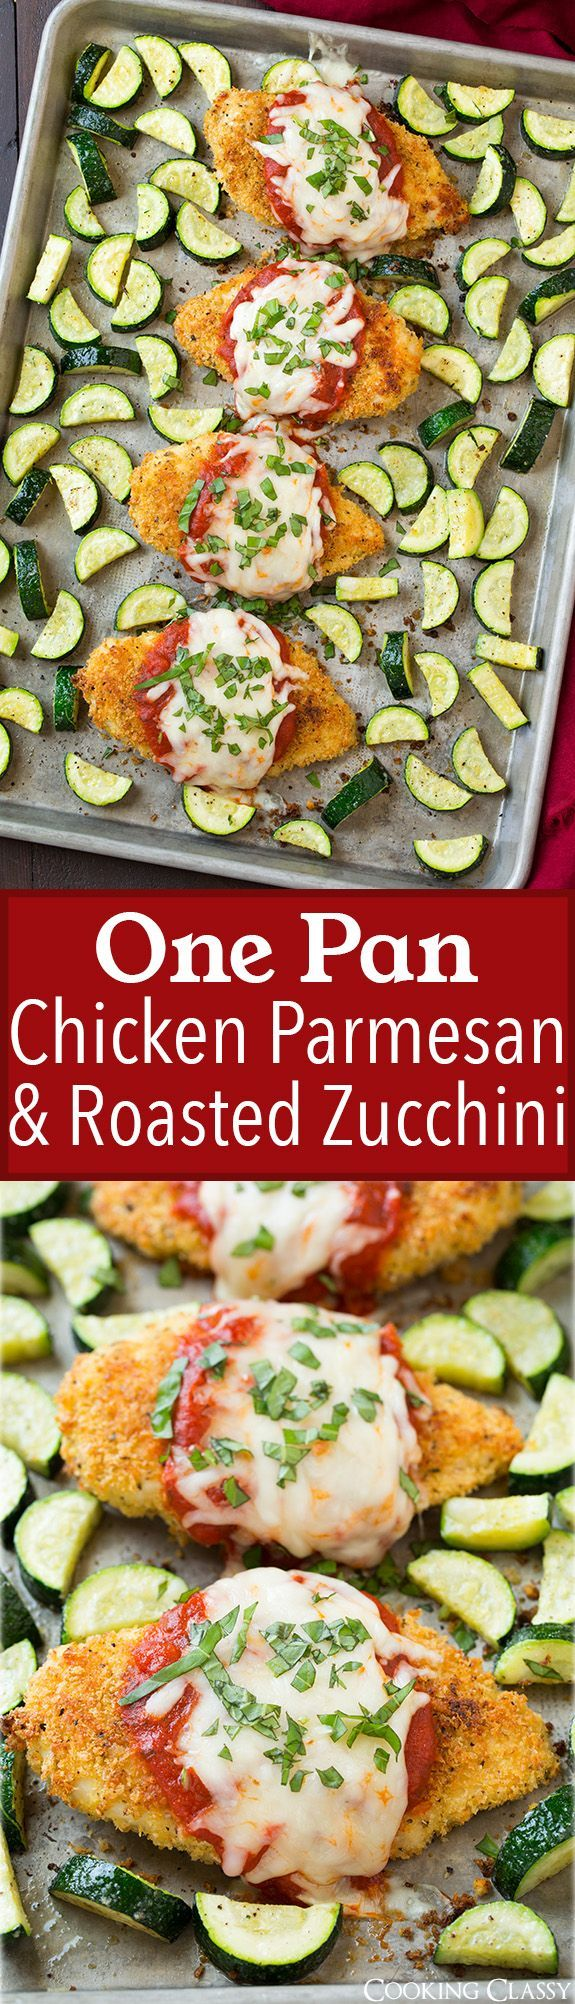 Food and Drink: One Pan Chicken Parmesan and Roasted Zucchini - Co...